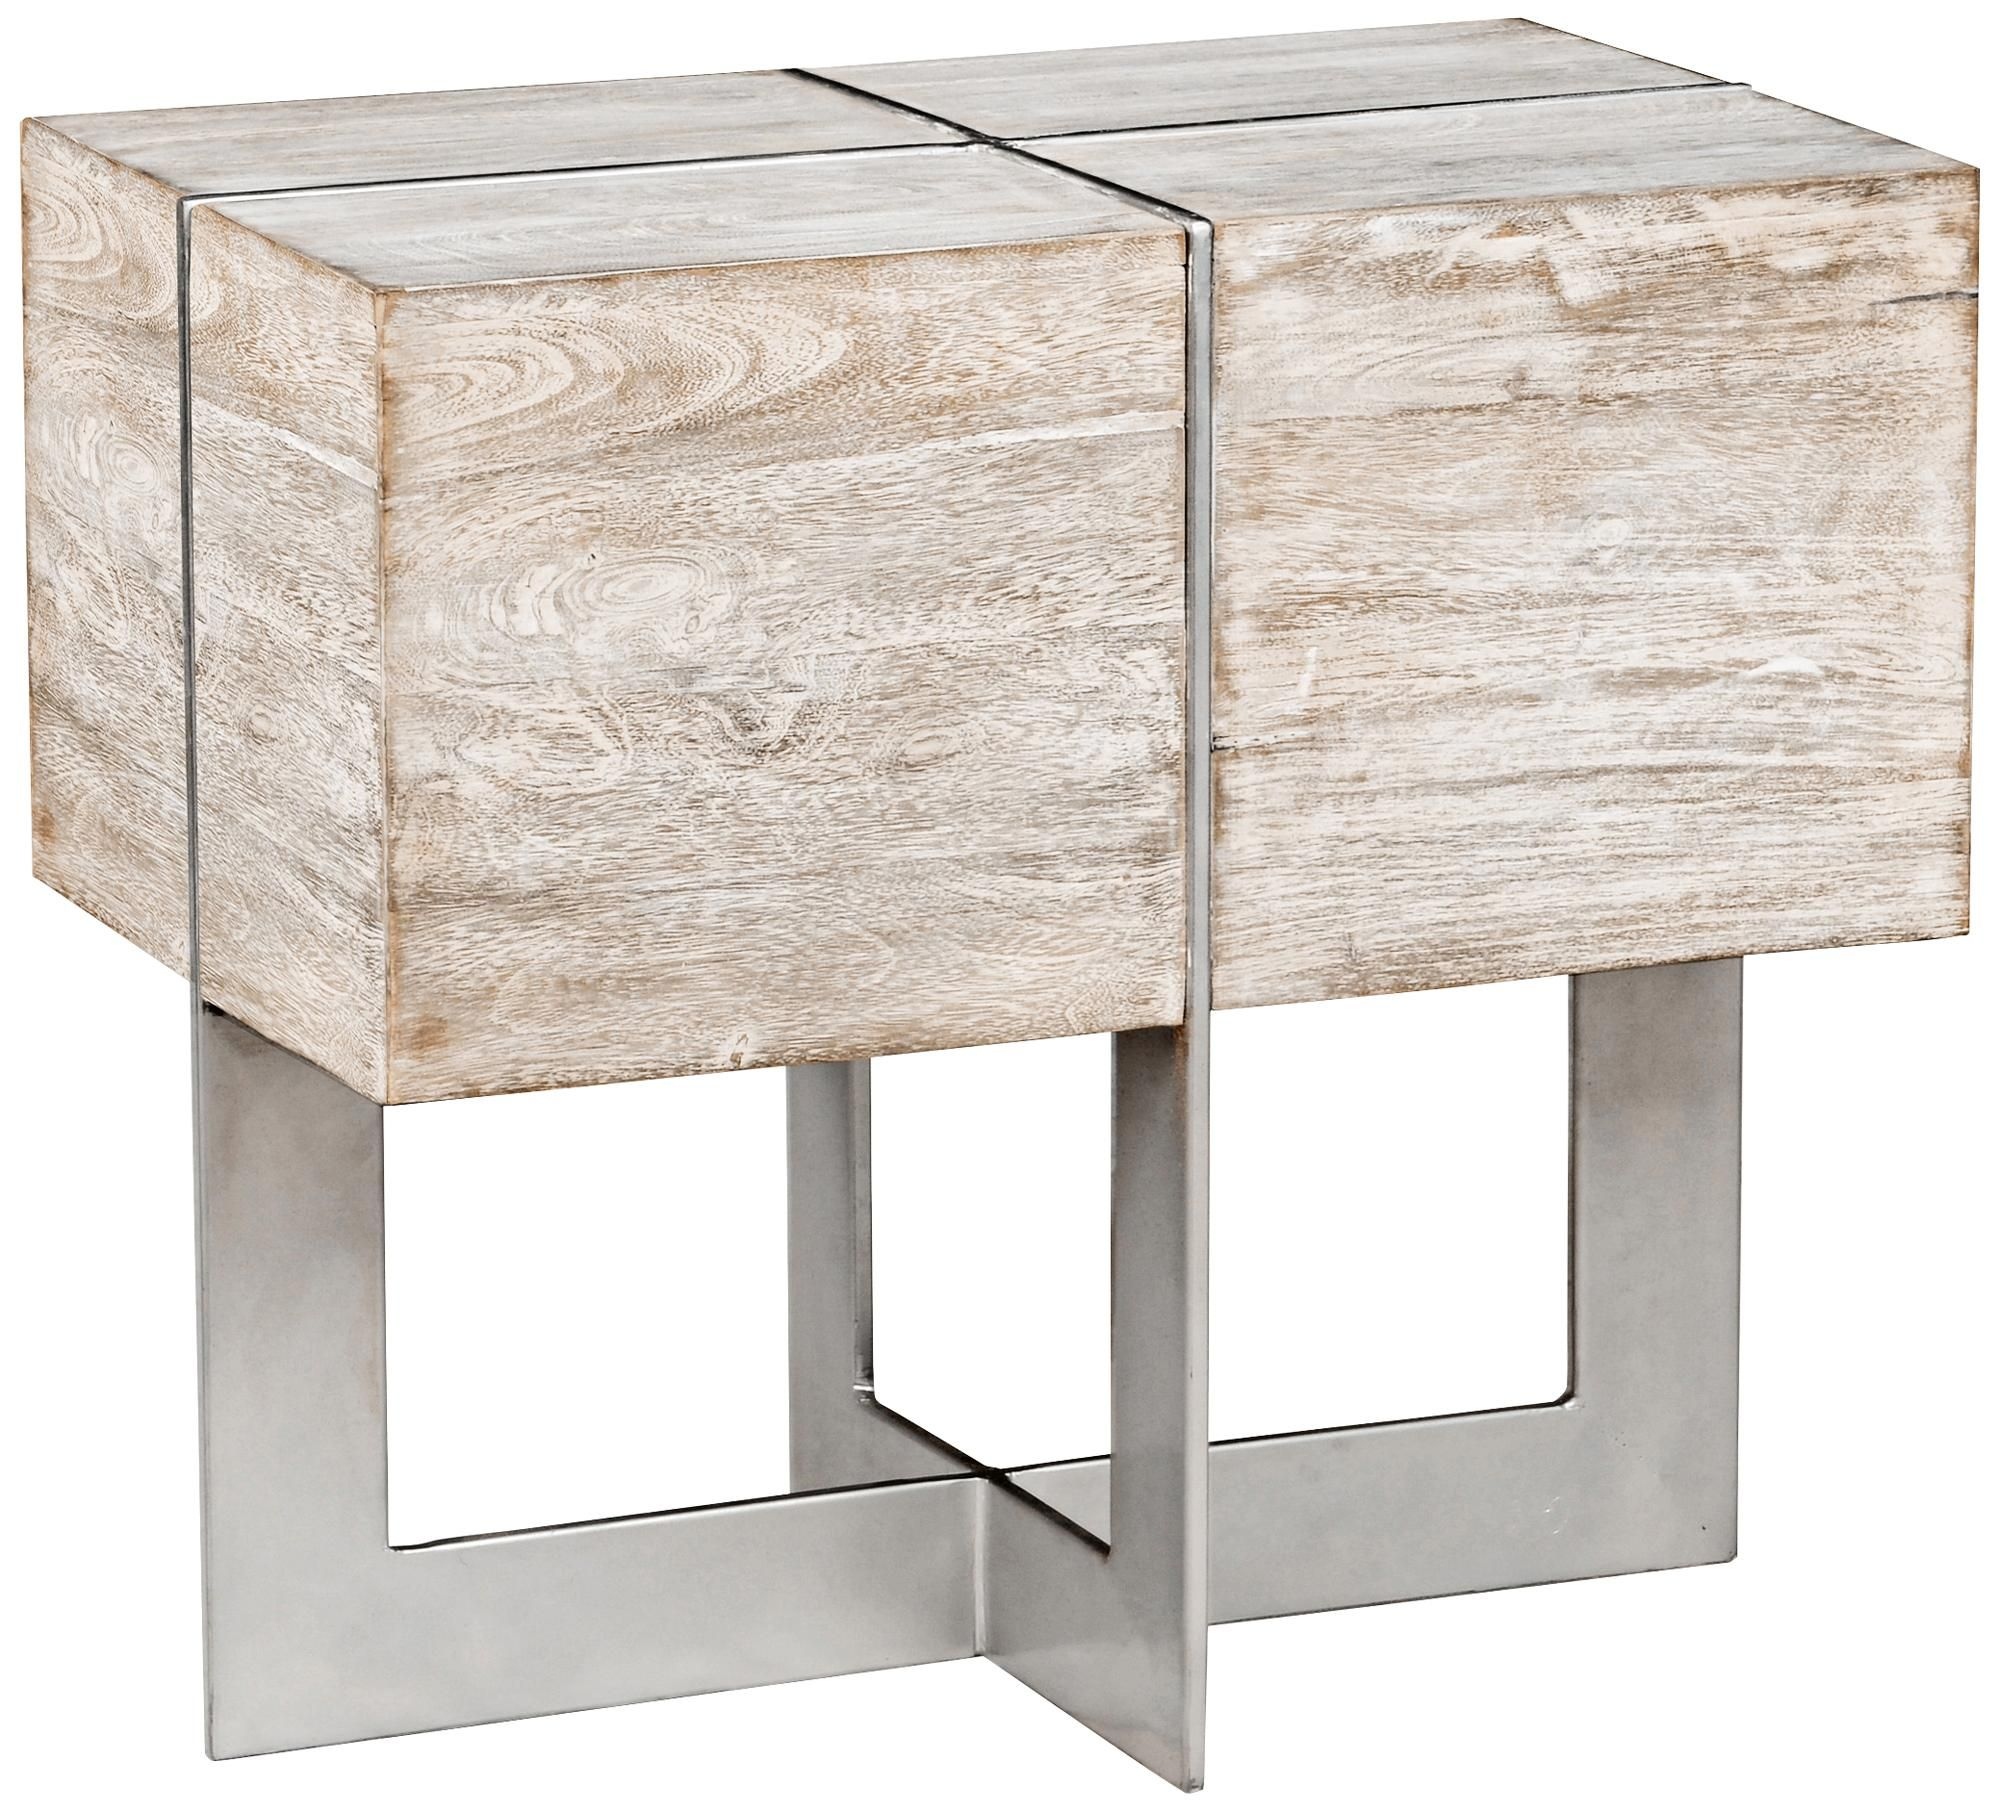 Desmond White Wash Solid Mango Wood Block End Table   Home Accents Pertaining To Parsons Walnut Top & Dark Steel Base 48X16 Console Tables (Gallery 17 of 30)